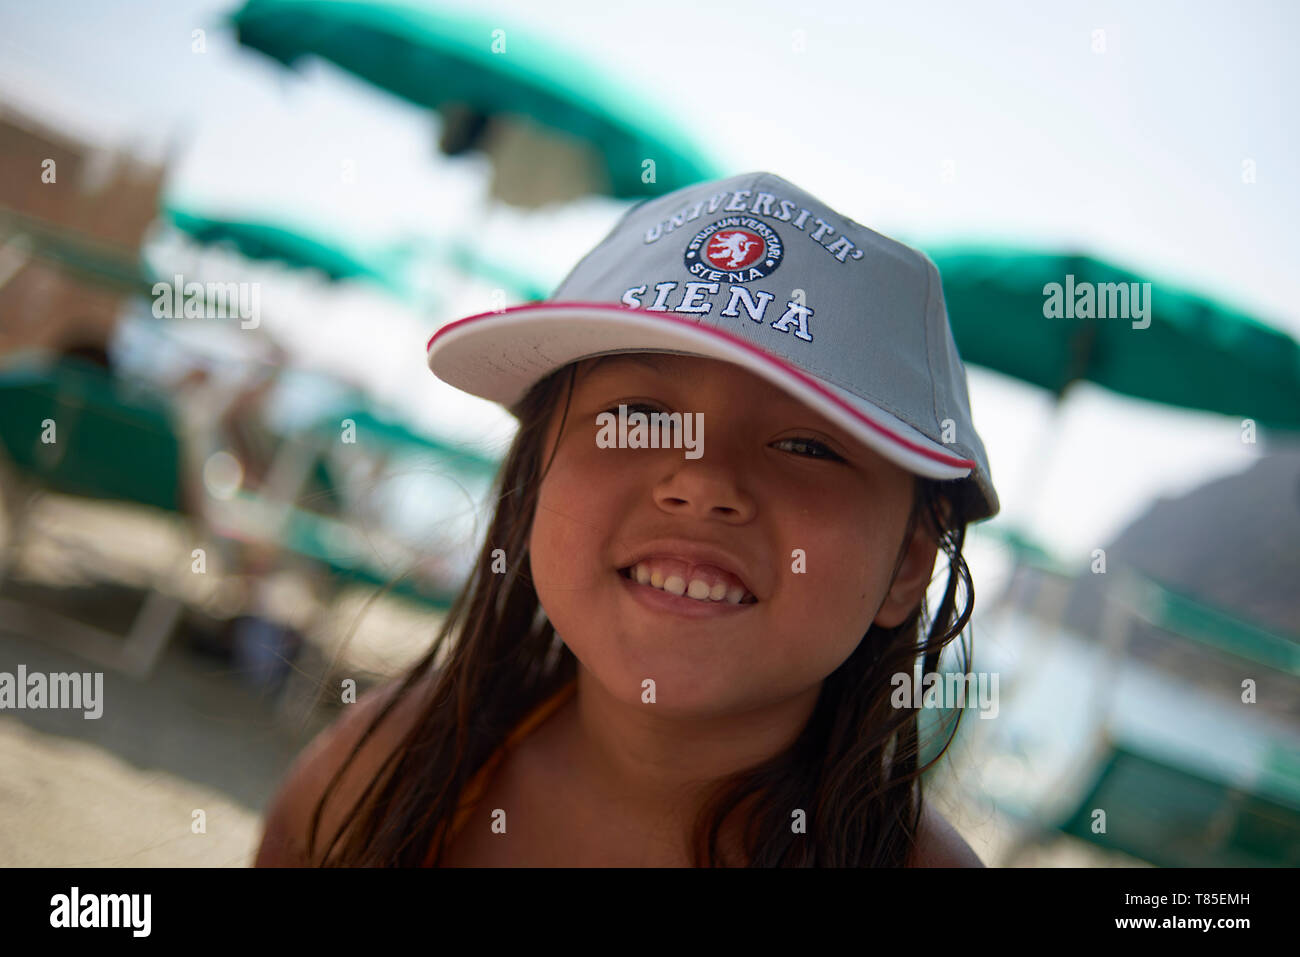 Cute Asian girl wearing a baseball cap from Siena smiling into camera whilst having fun at the beach in summer sunshine - Stock Image